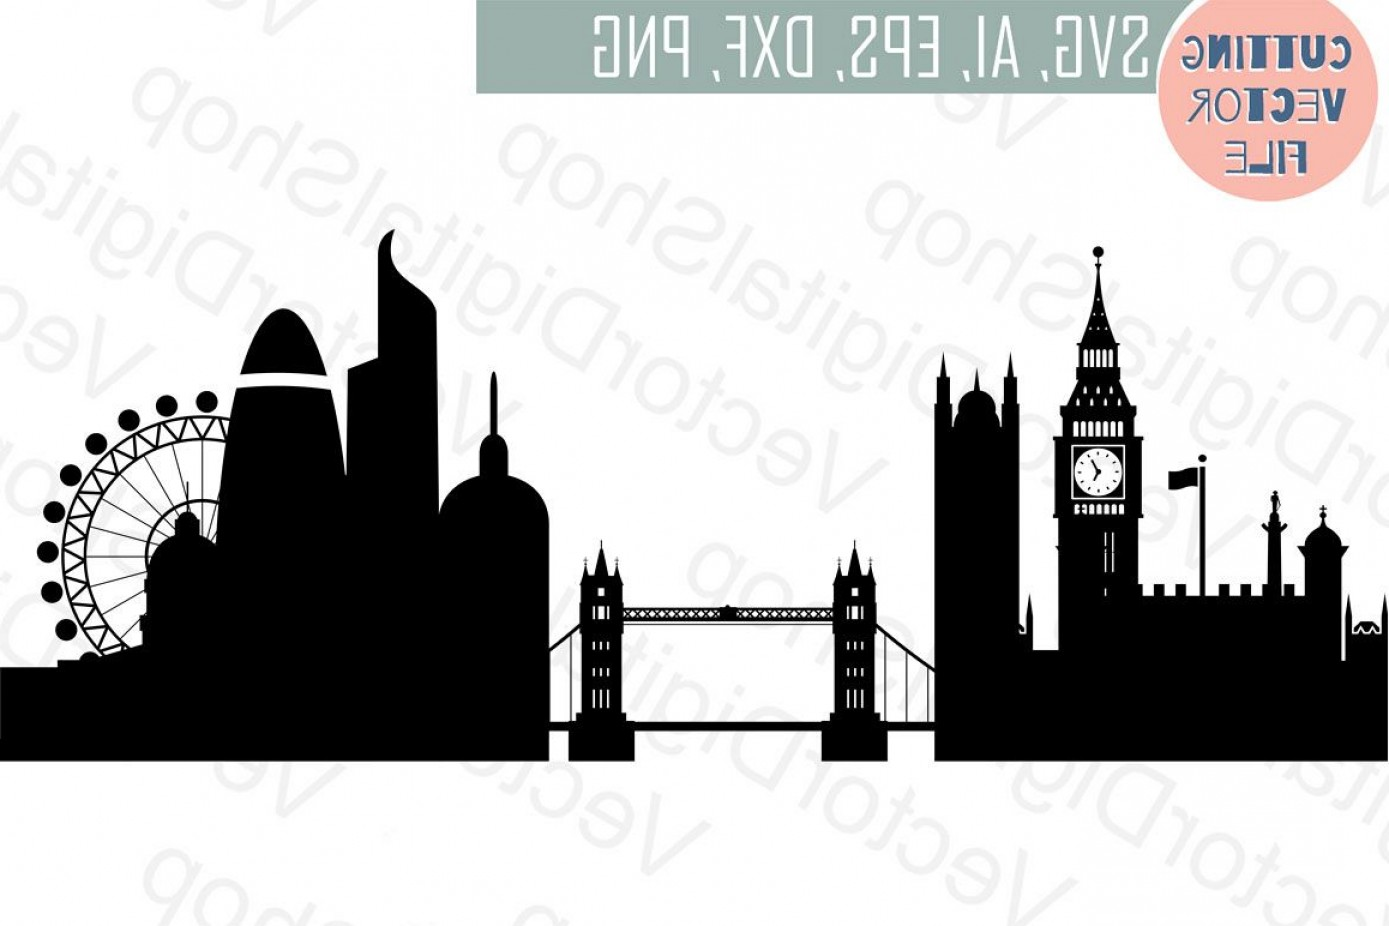 UK Skyline Vector: London Skyline Vector England City Svg Jpg Png Dwg Cdr Eps Ai